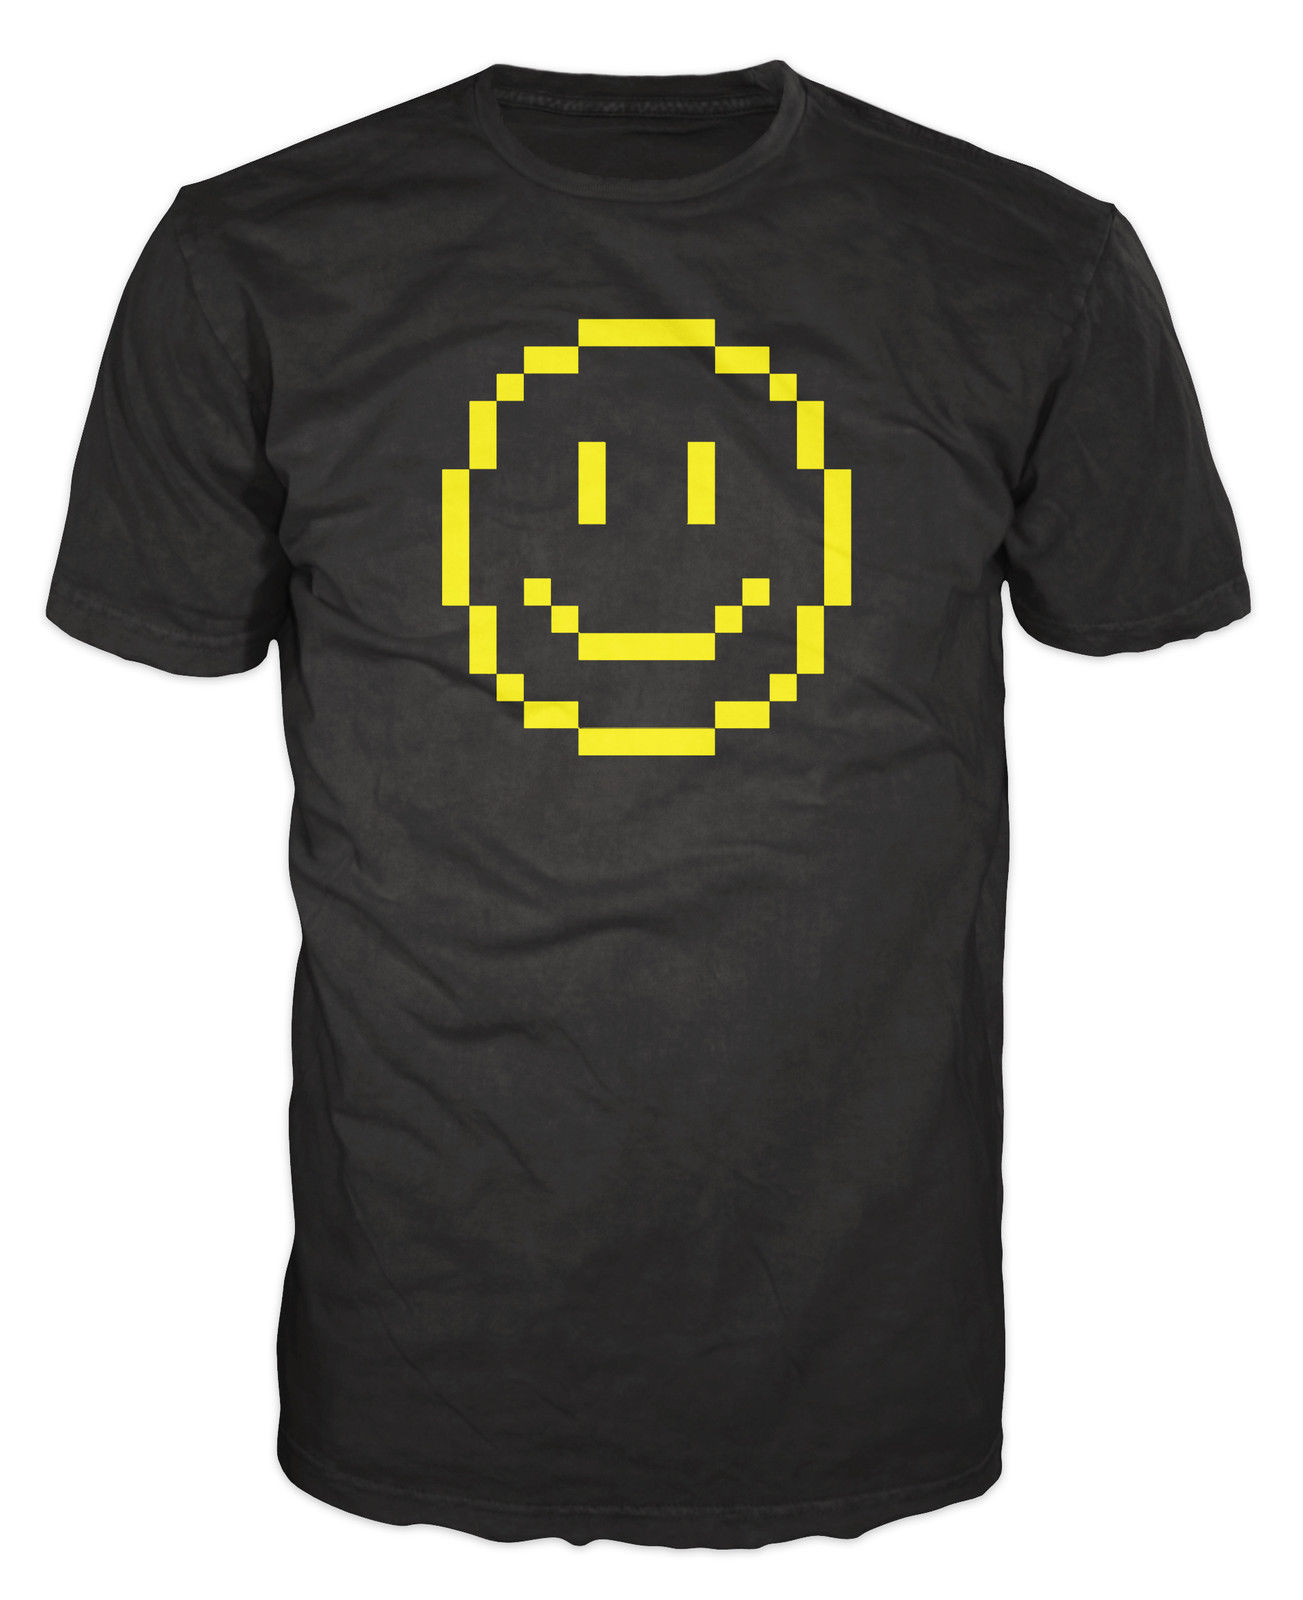 Pixelated Smiley Retro Funny Classic Video Game Geek 80s 90s MenS High Quality Tees top tee